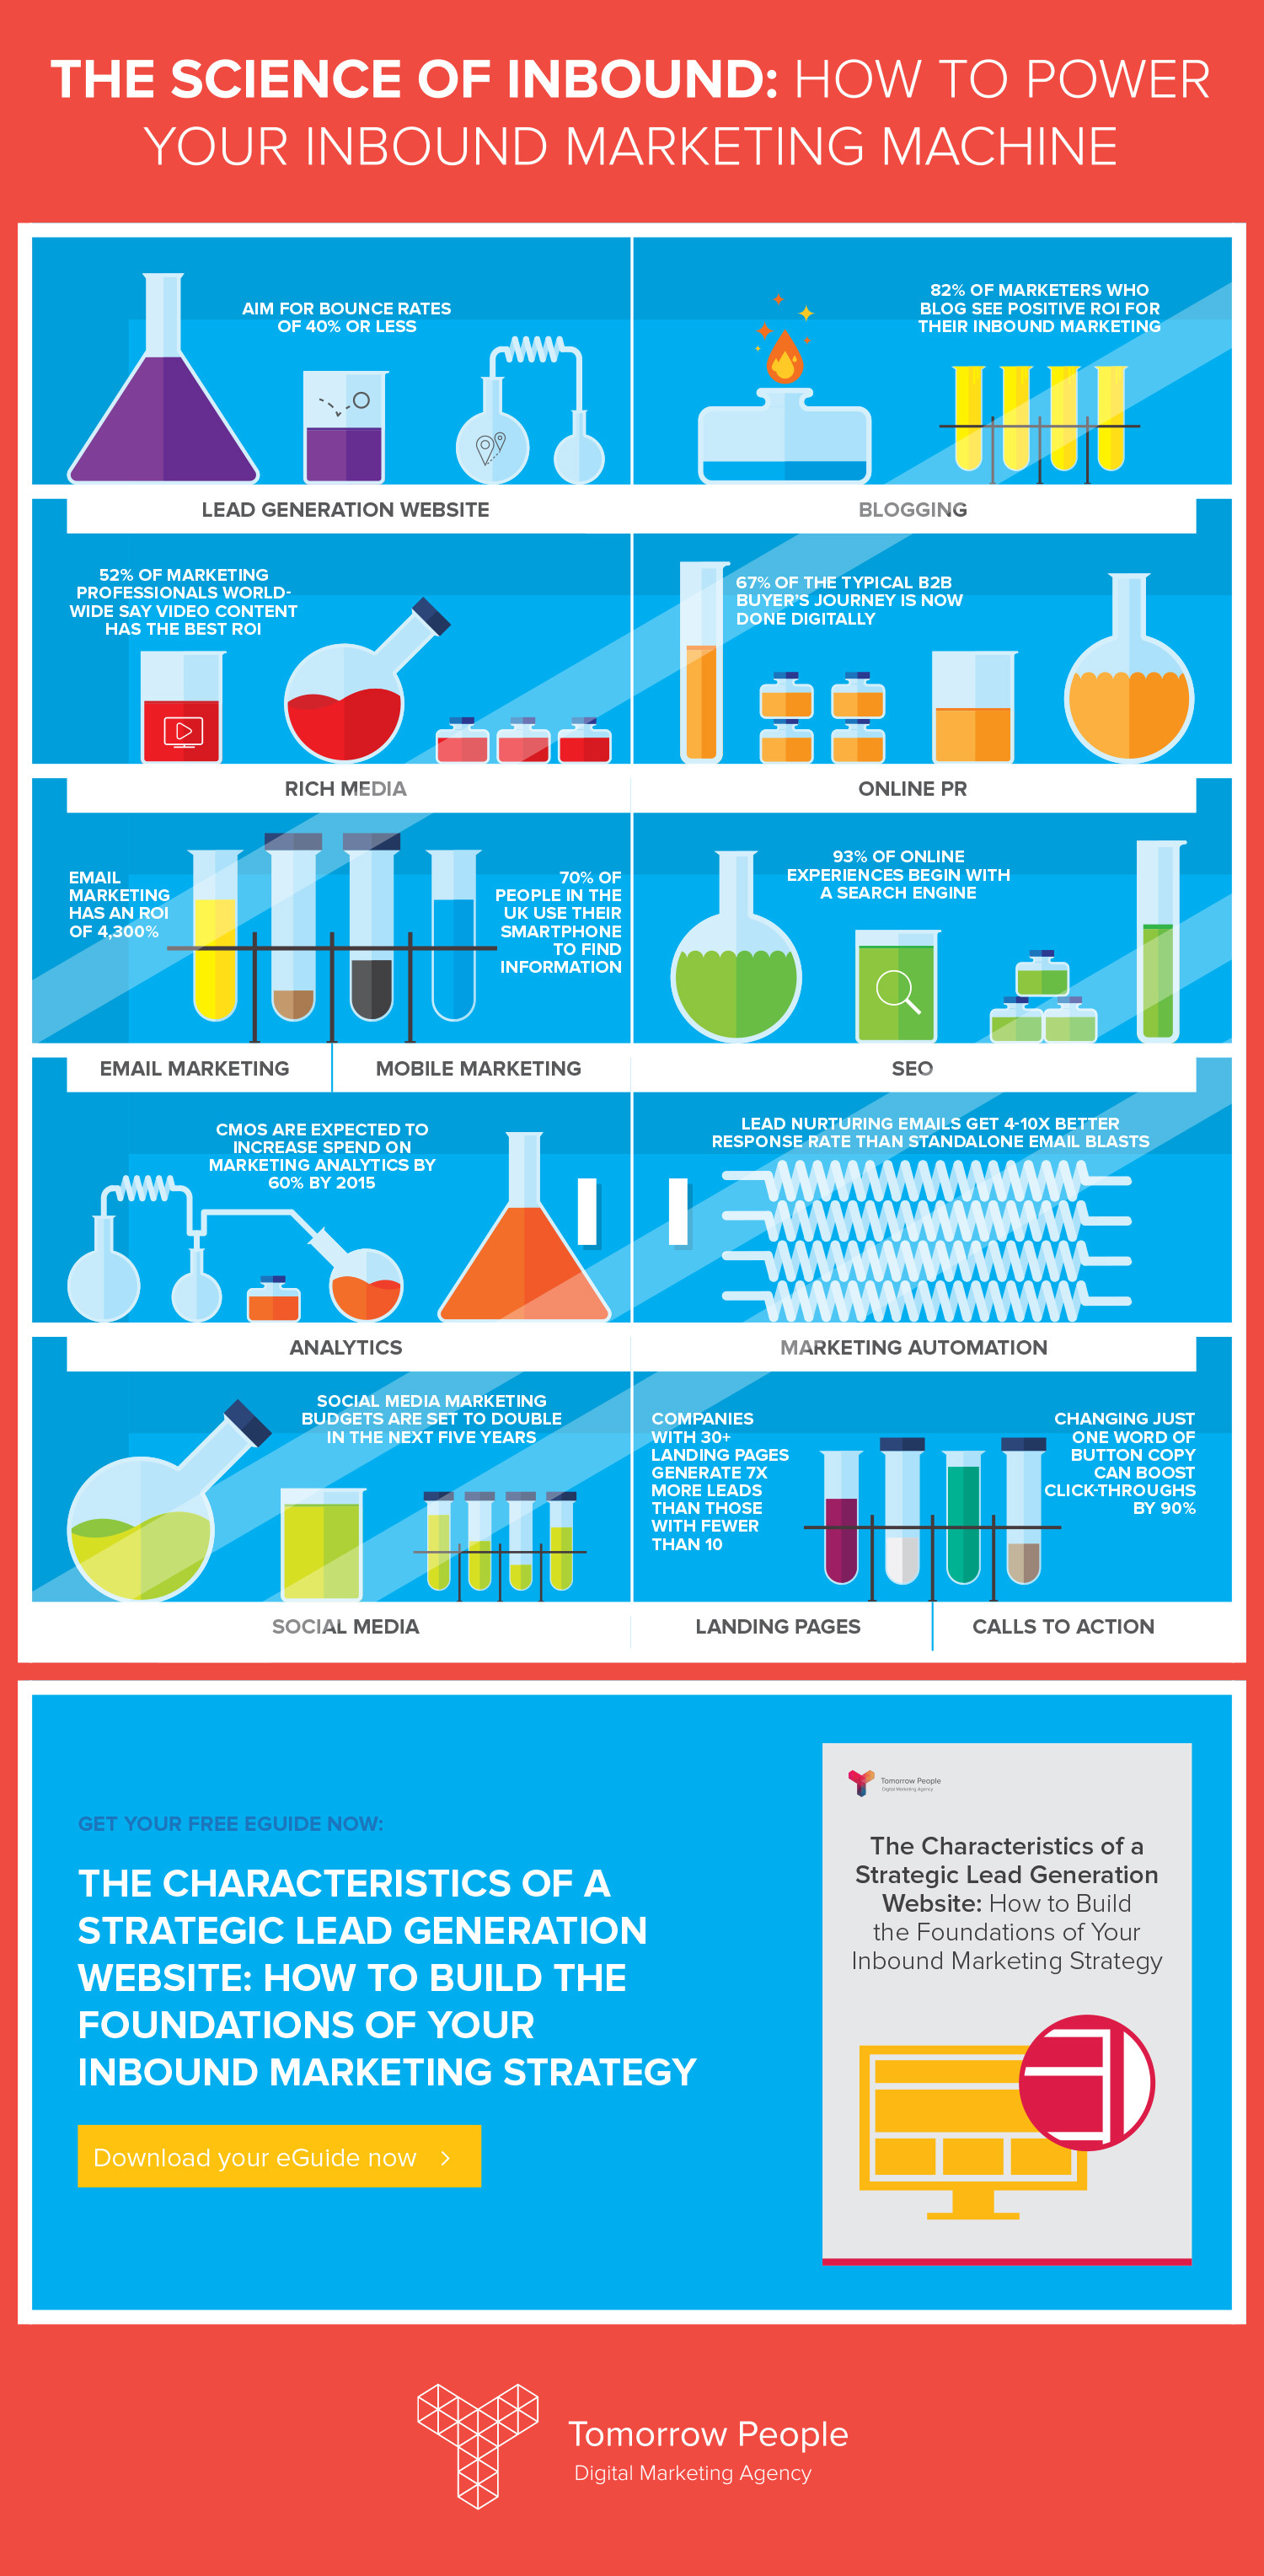 The Science of Inbound: How to Power Your Inbound Marketing Machine Infographic